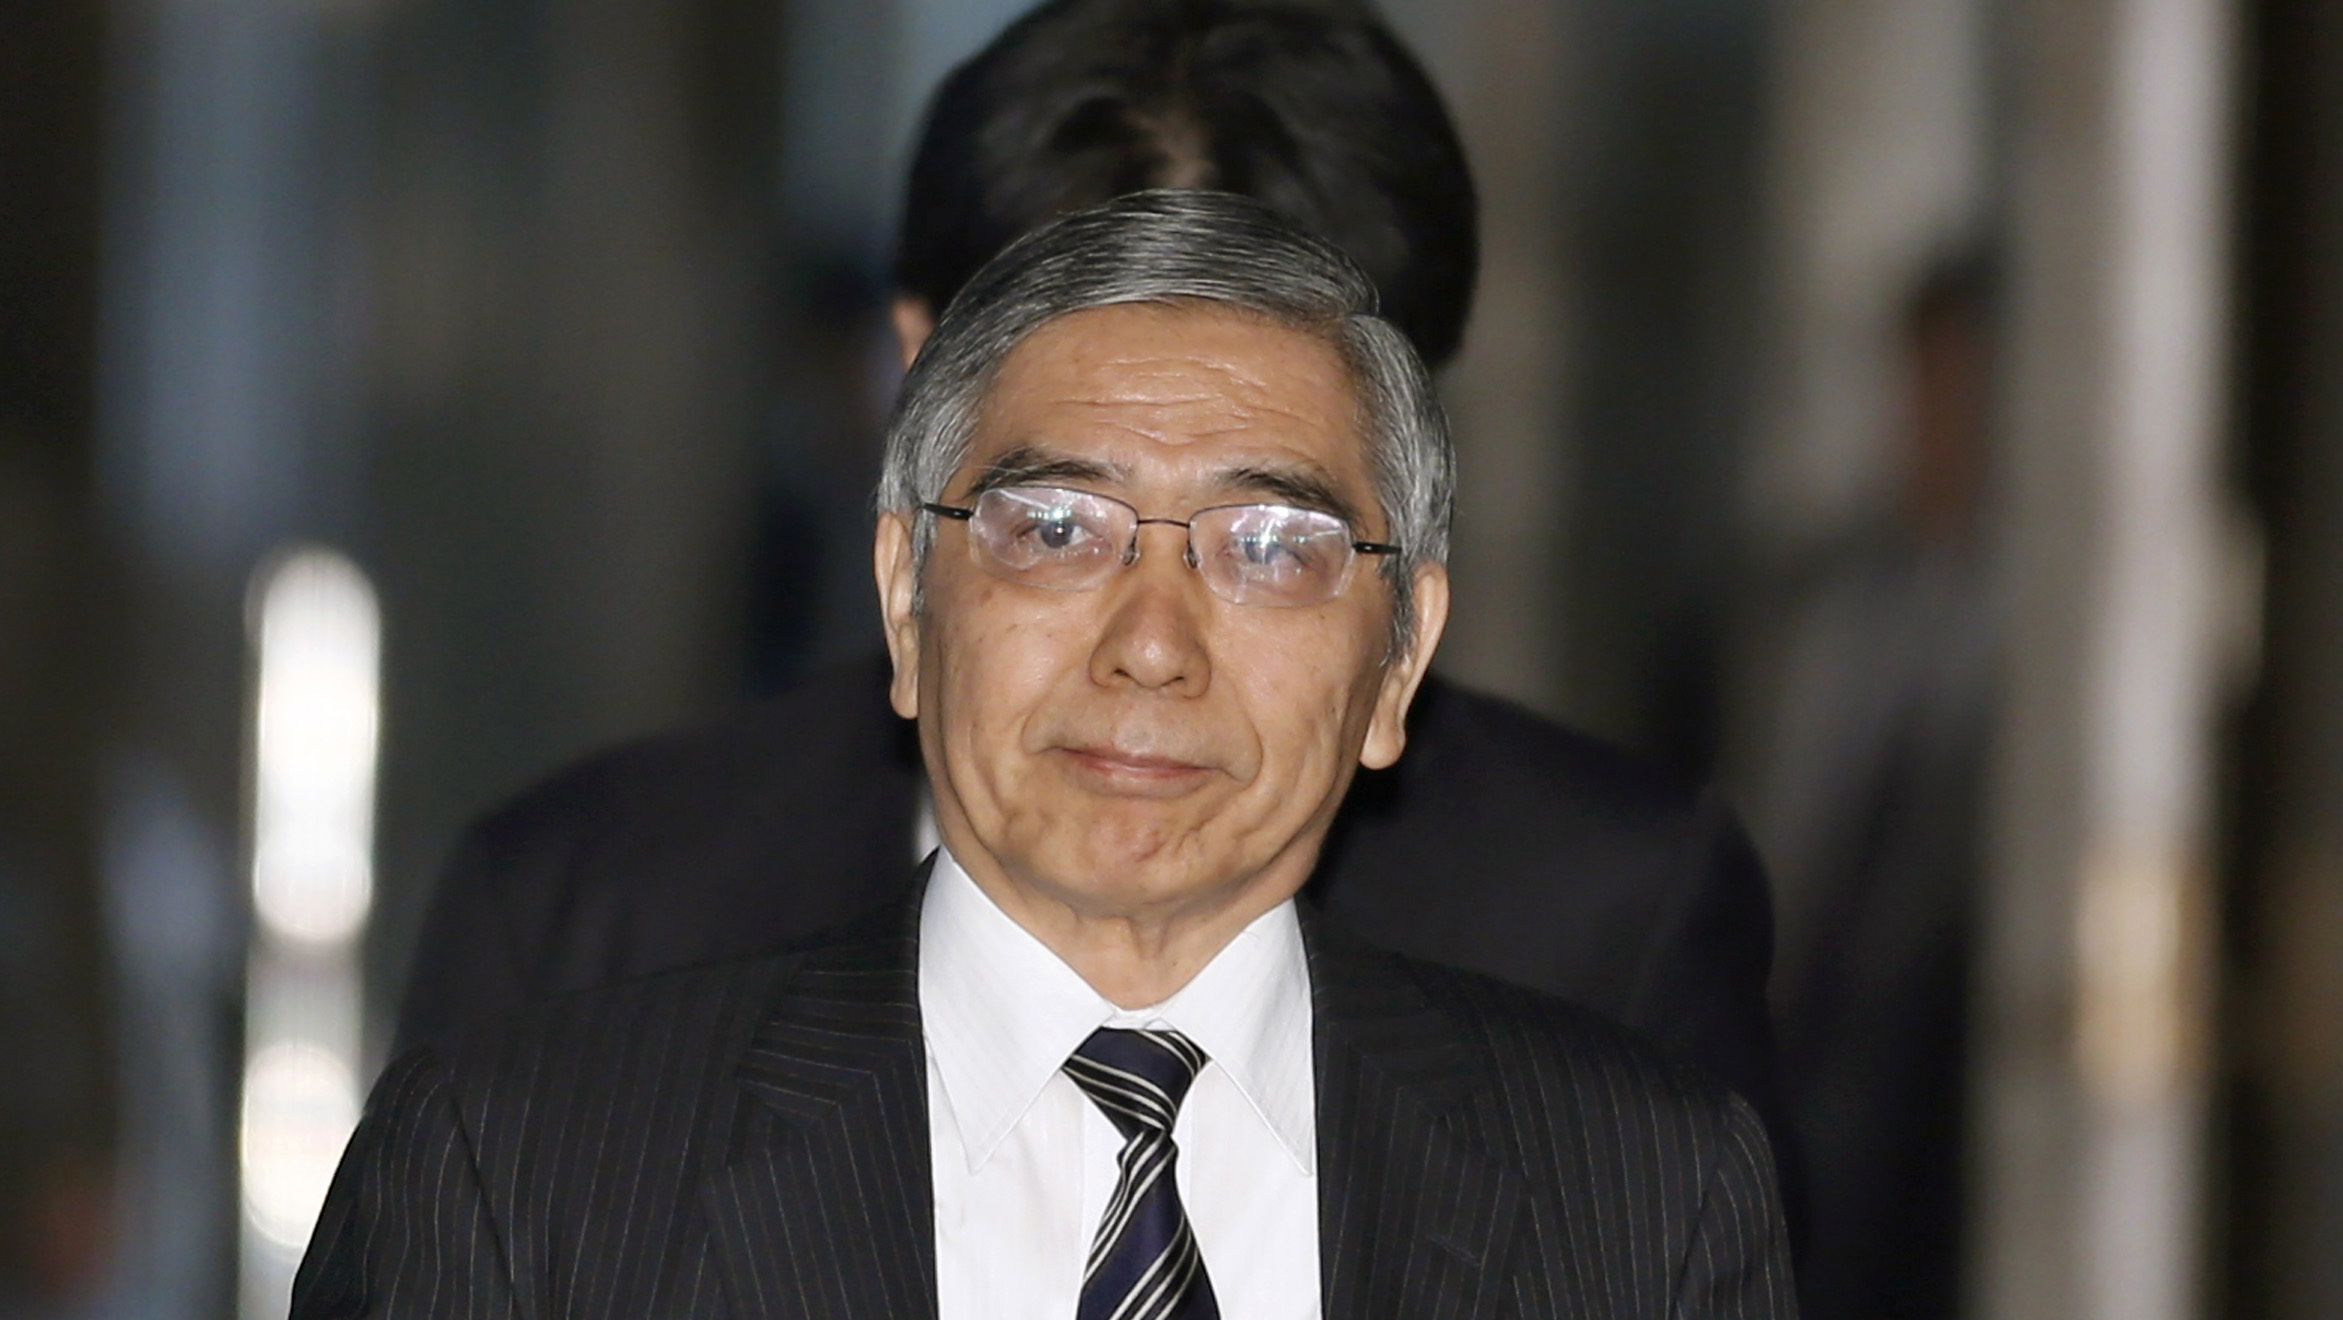 Asian Development Bank President Haruhiko Kuroda, who was recently nominated by Japan's Prime Minister Shinzo Abe to head the country's central bank, arrives at a lower house committee meeting in Tokyo, Monday, March 4, 2013. (AP Photo/Shizuo Kambayashi